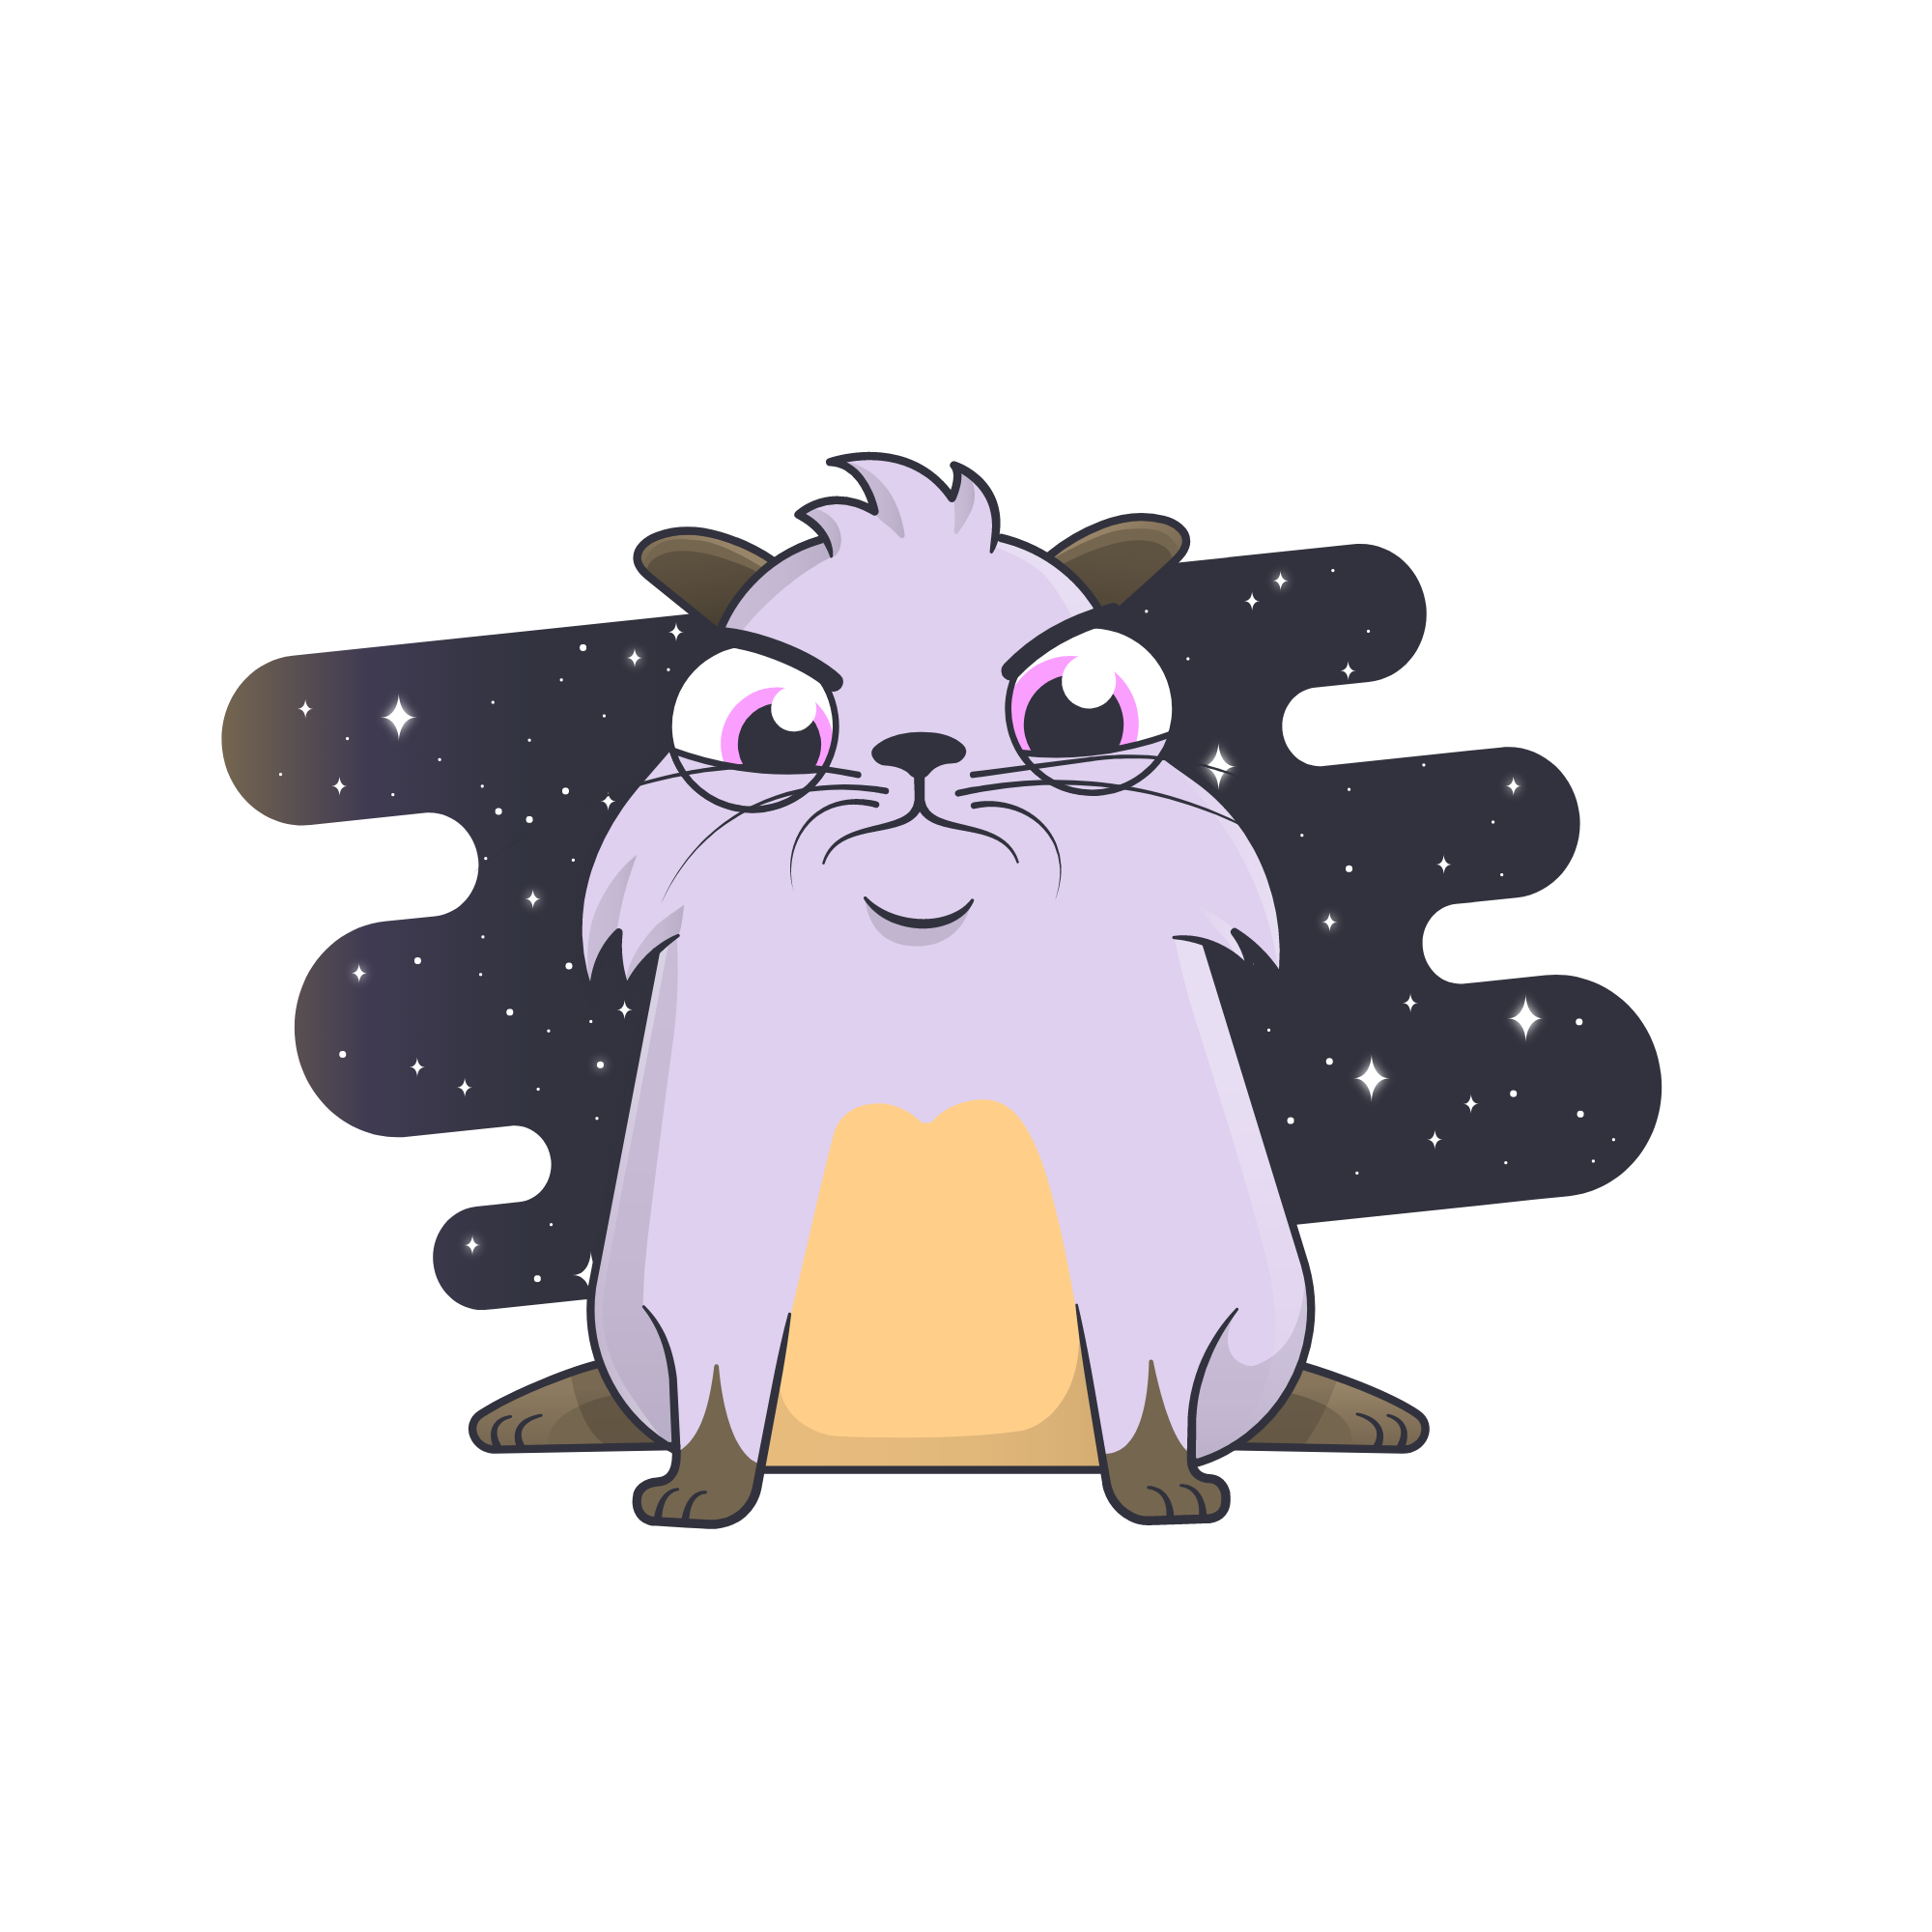 cryptokitty #1810849